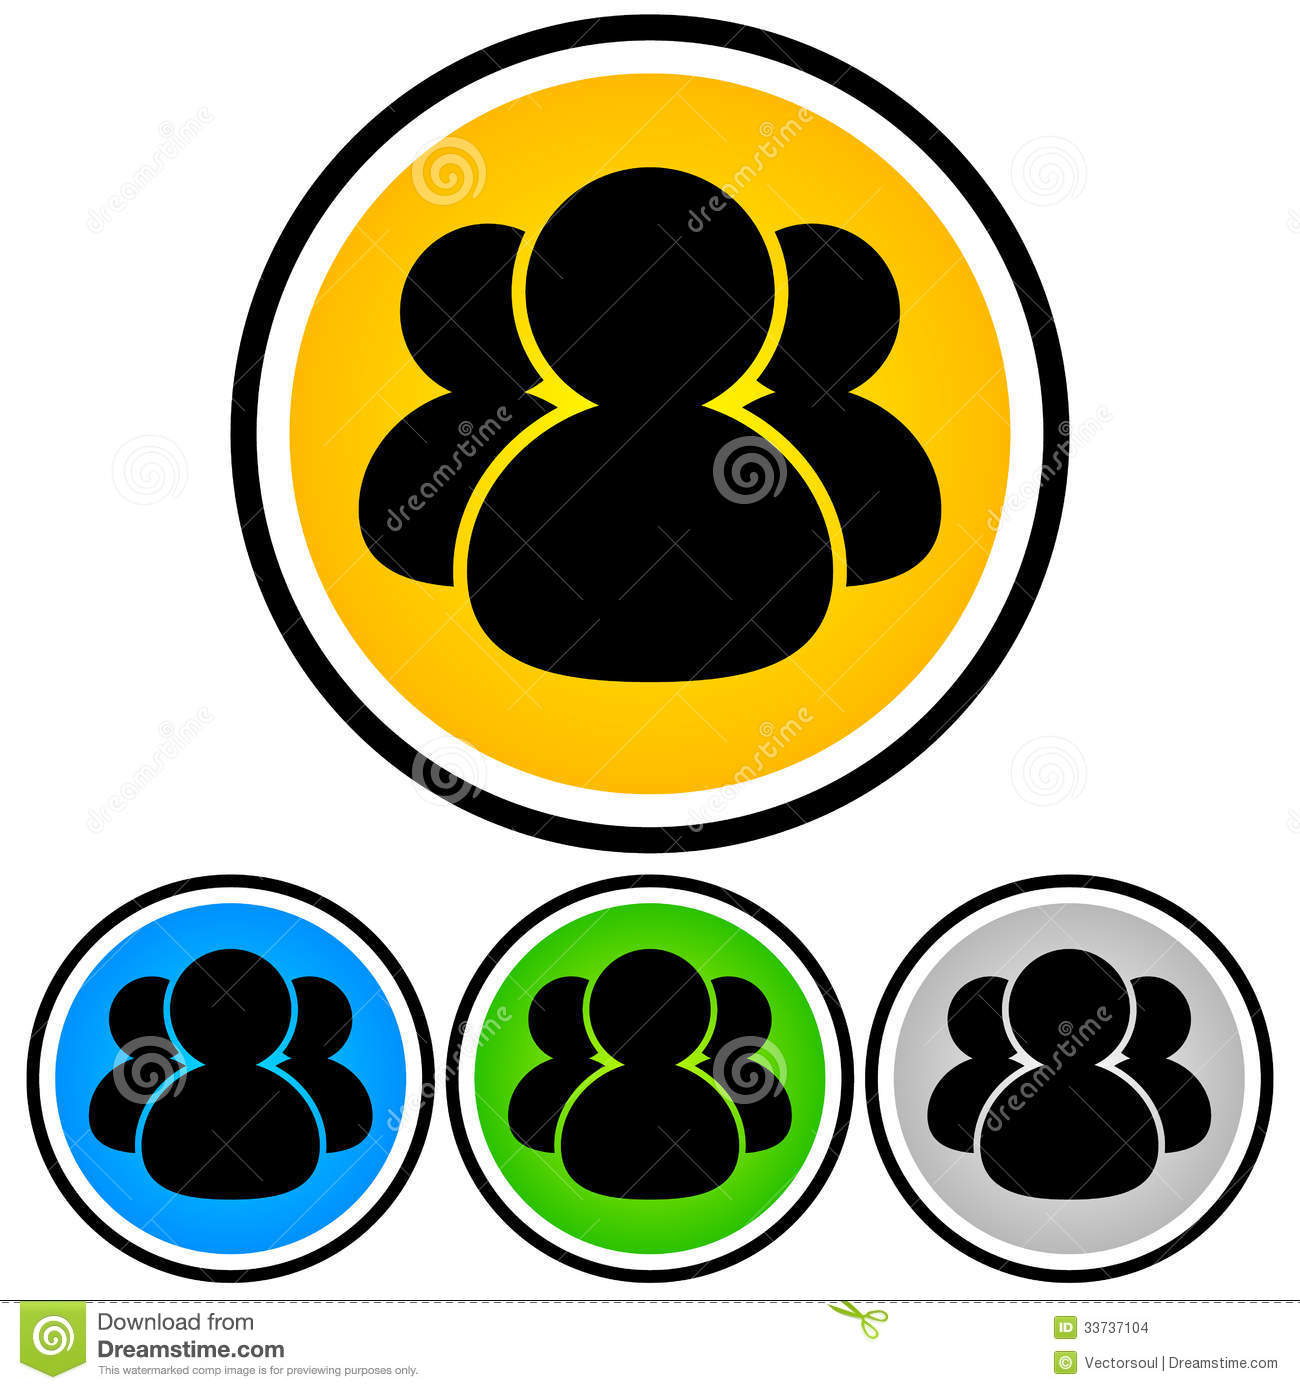 Social Media, Community, People Icon Stock Images - Image ...